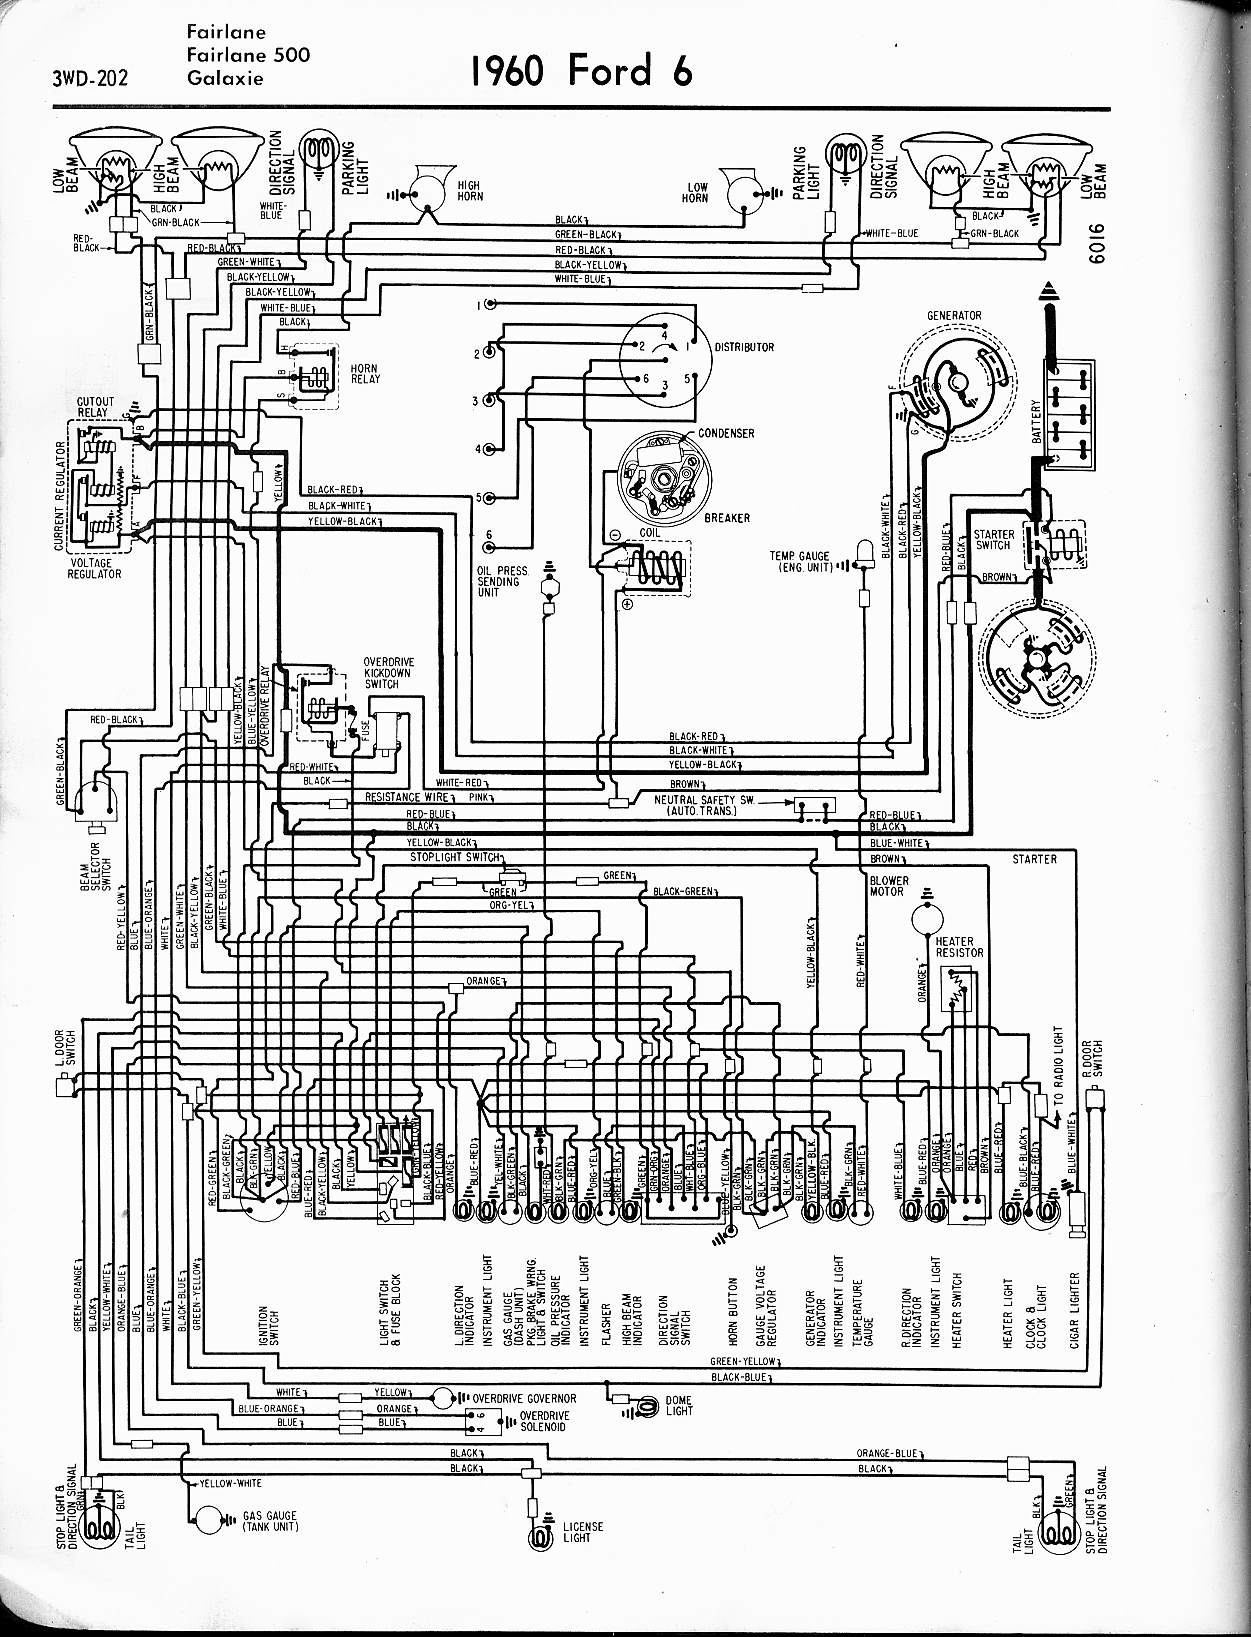 MWire5765 202 57 65 ford wiring diagrams 1965 ford f100 wiring harness at bayanpartner.co